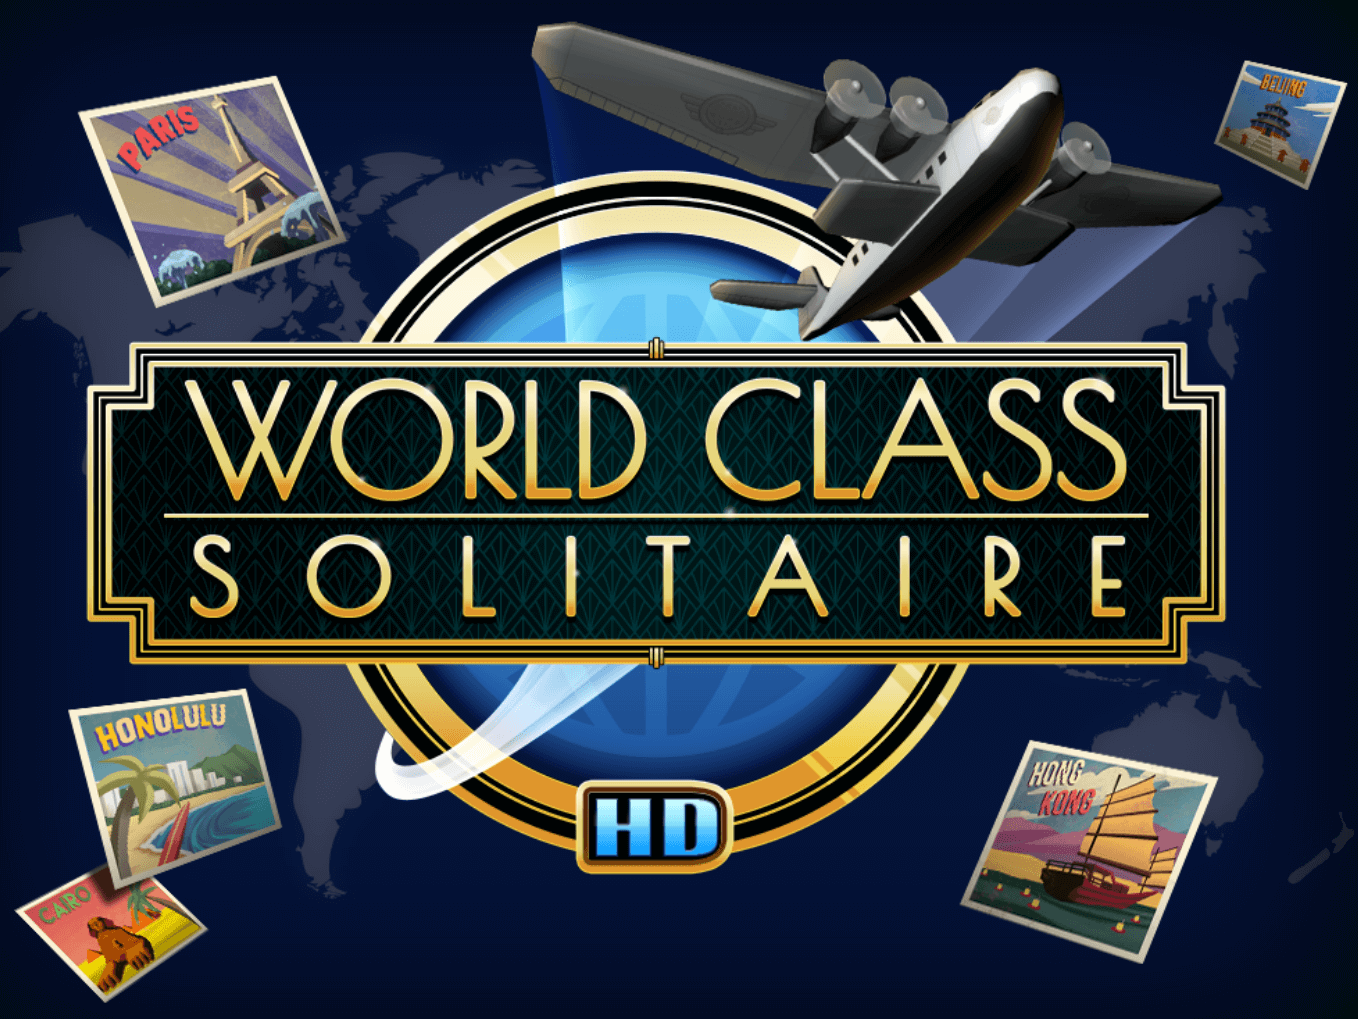 Now available world class solitaire hd for Big fish casino free chips promo code